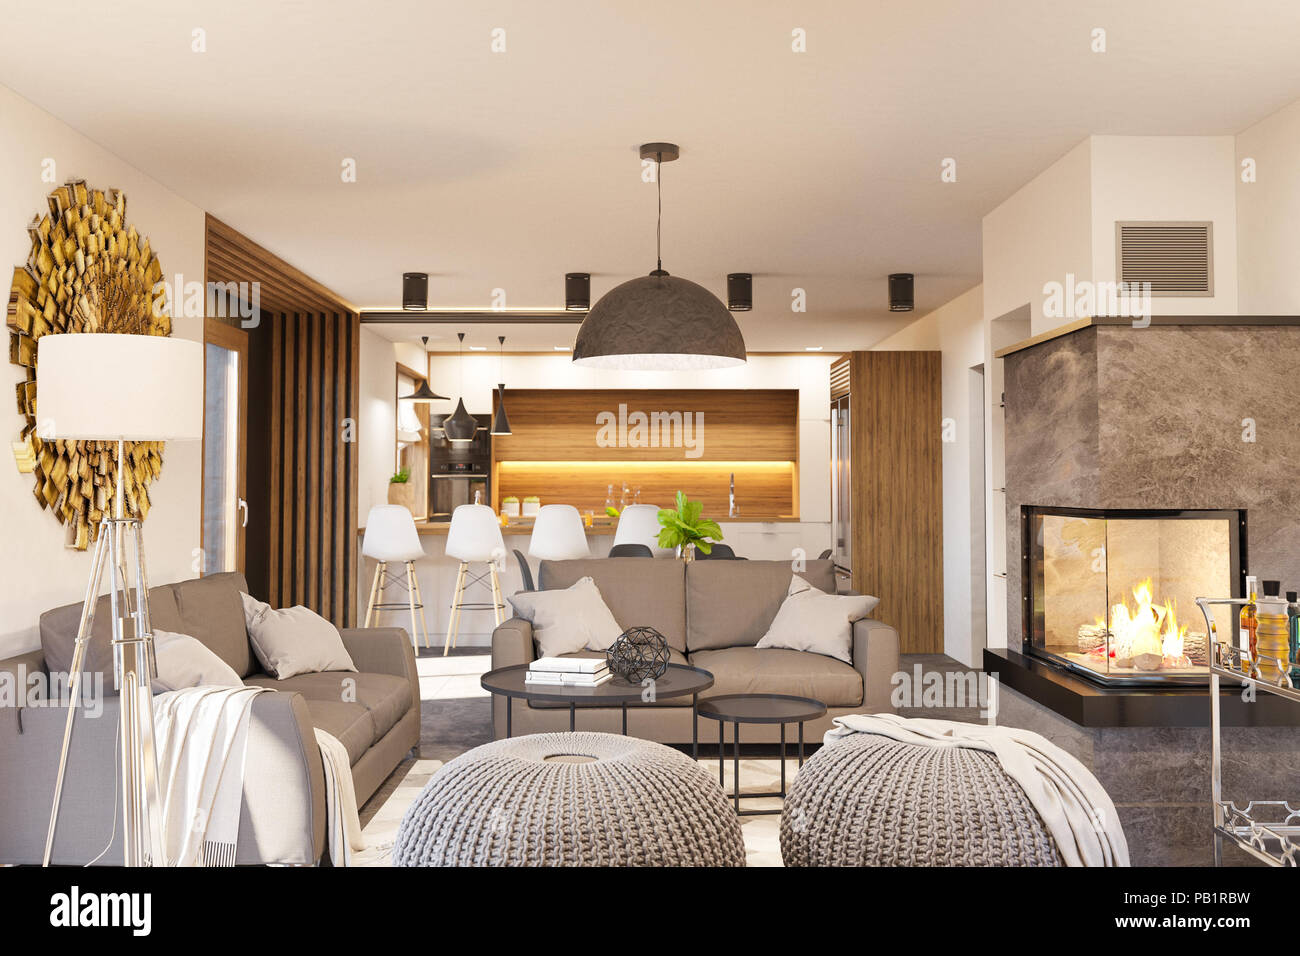 Living Room And Kitchen Interior Design With Fireplace Modern House In The Scandinavian